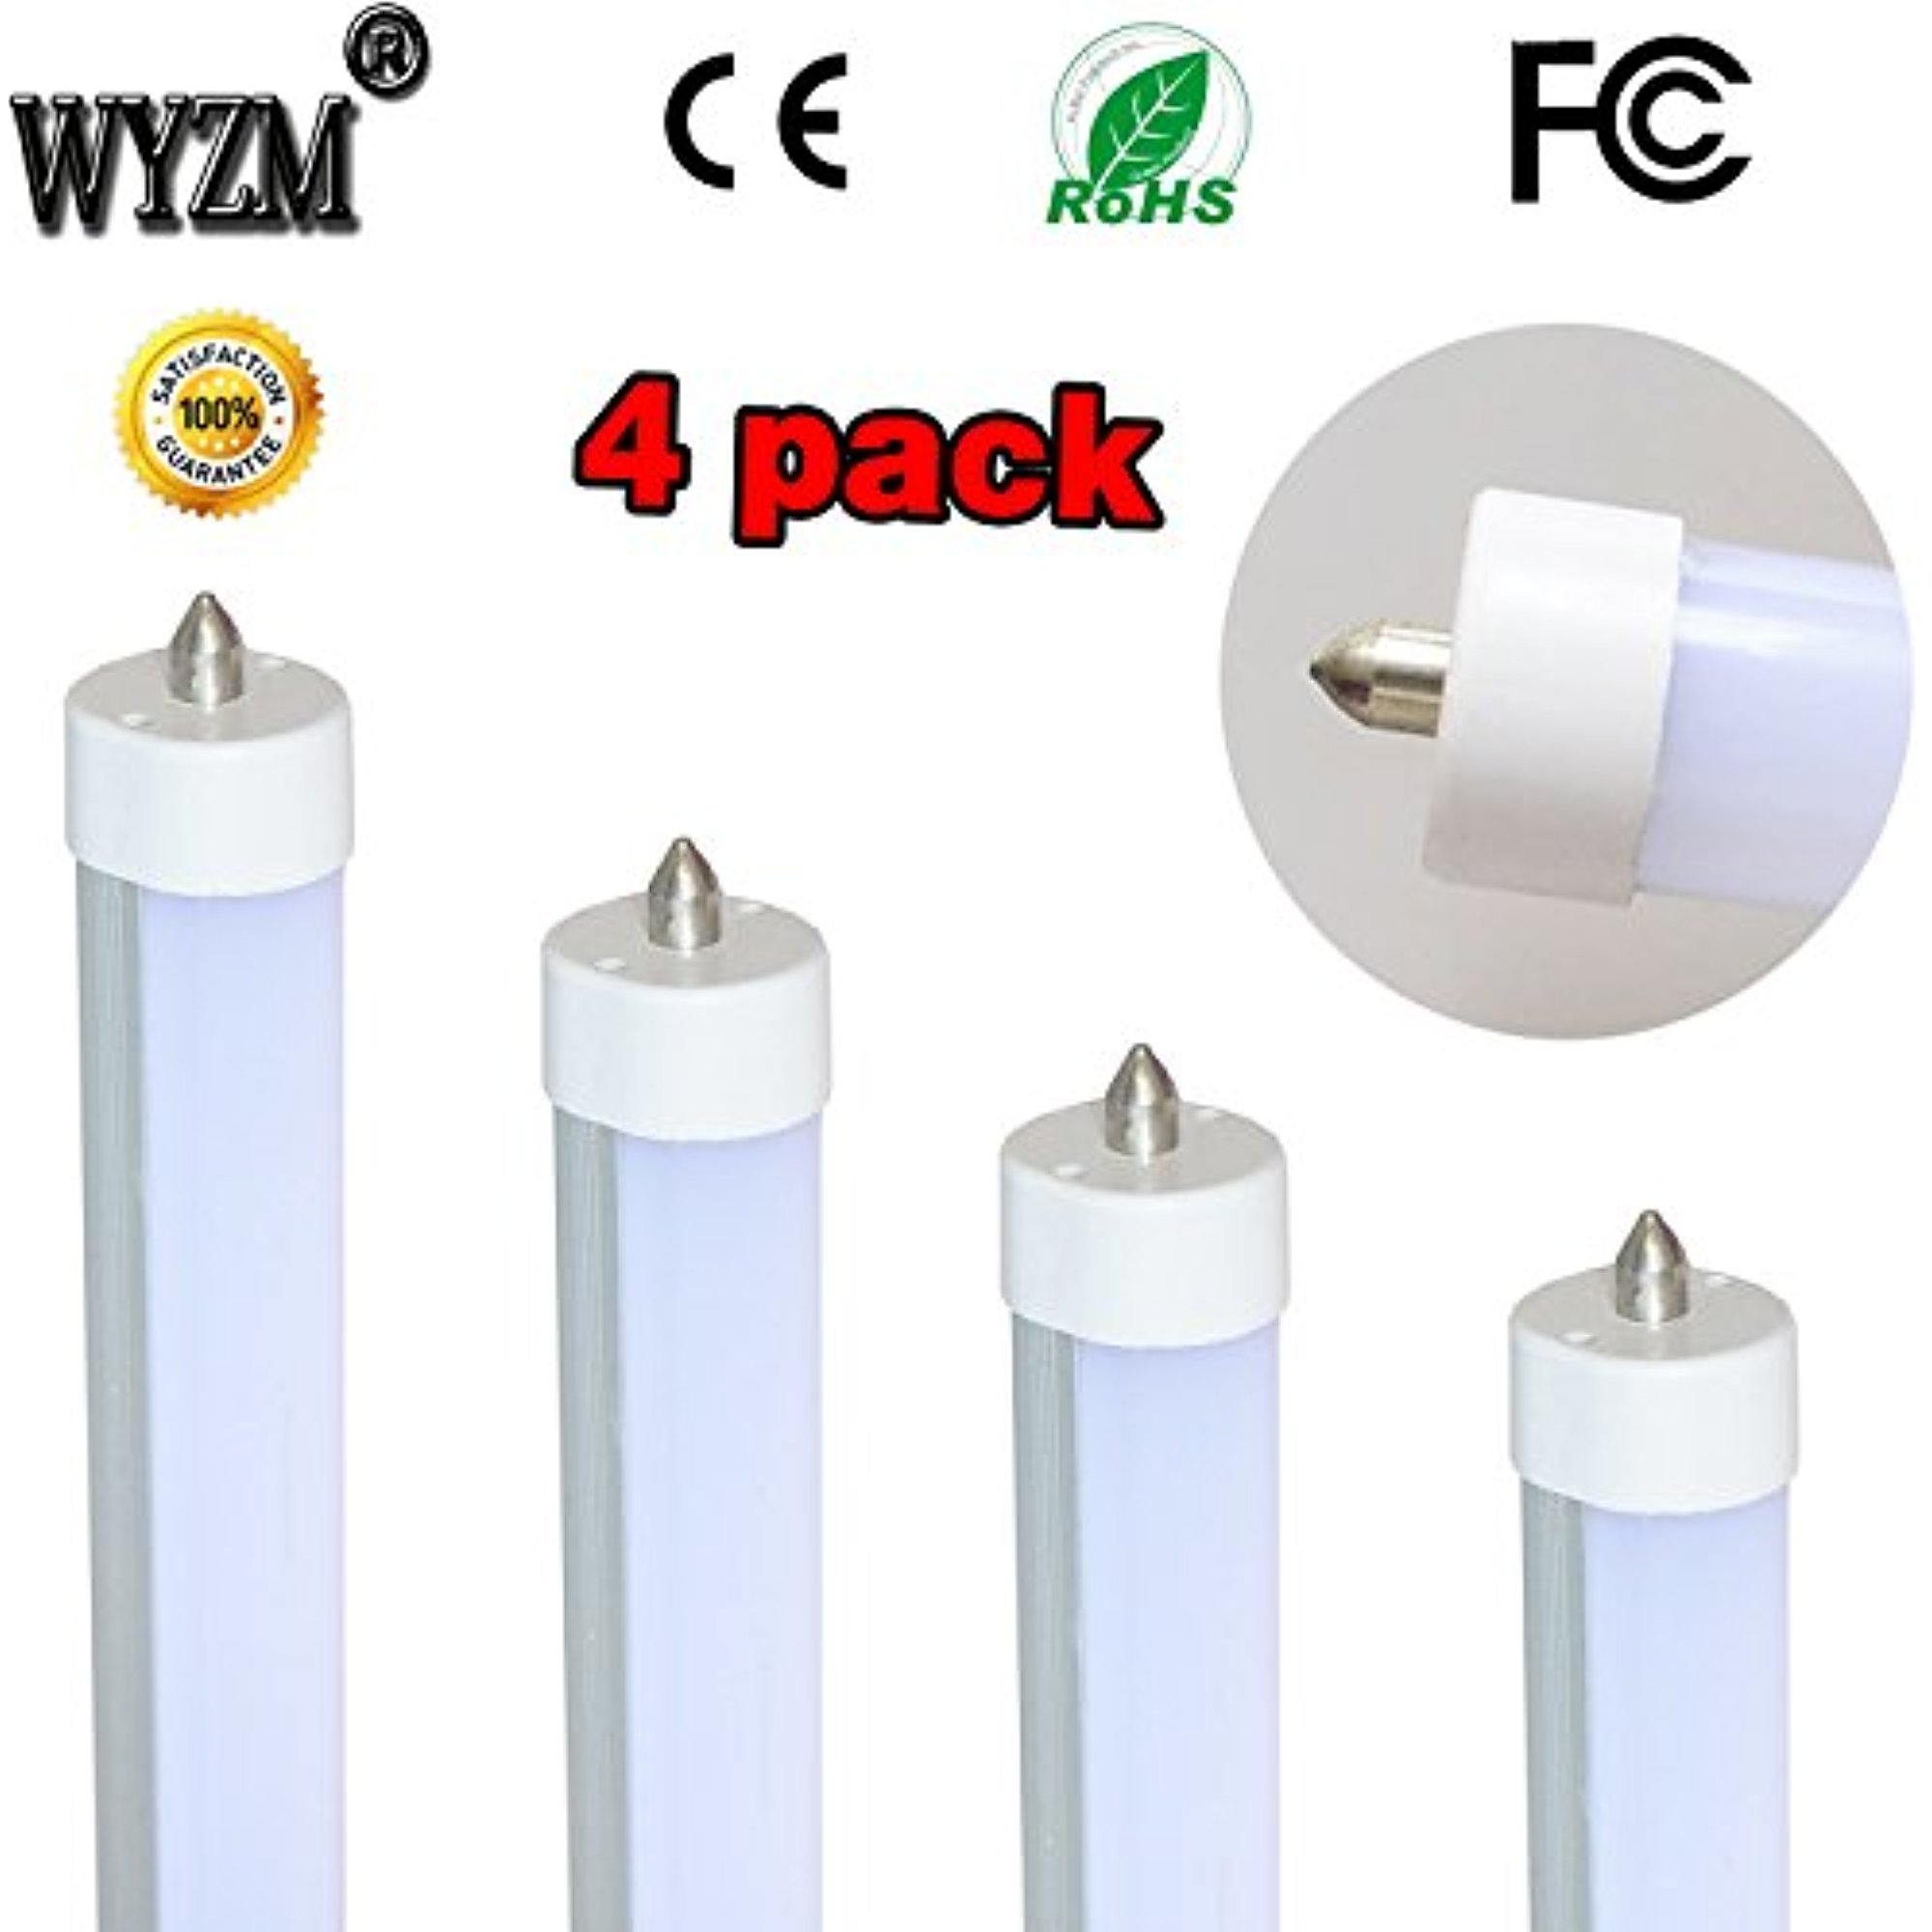 "WYZM 4-Pack of 40Watt T12 96"" 8ft LED Tube,120V 277V Inpu..."